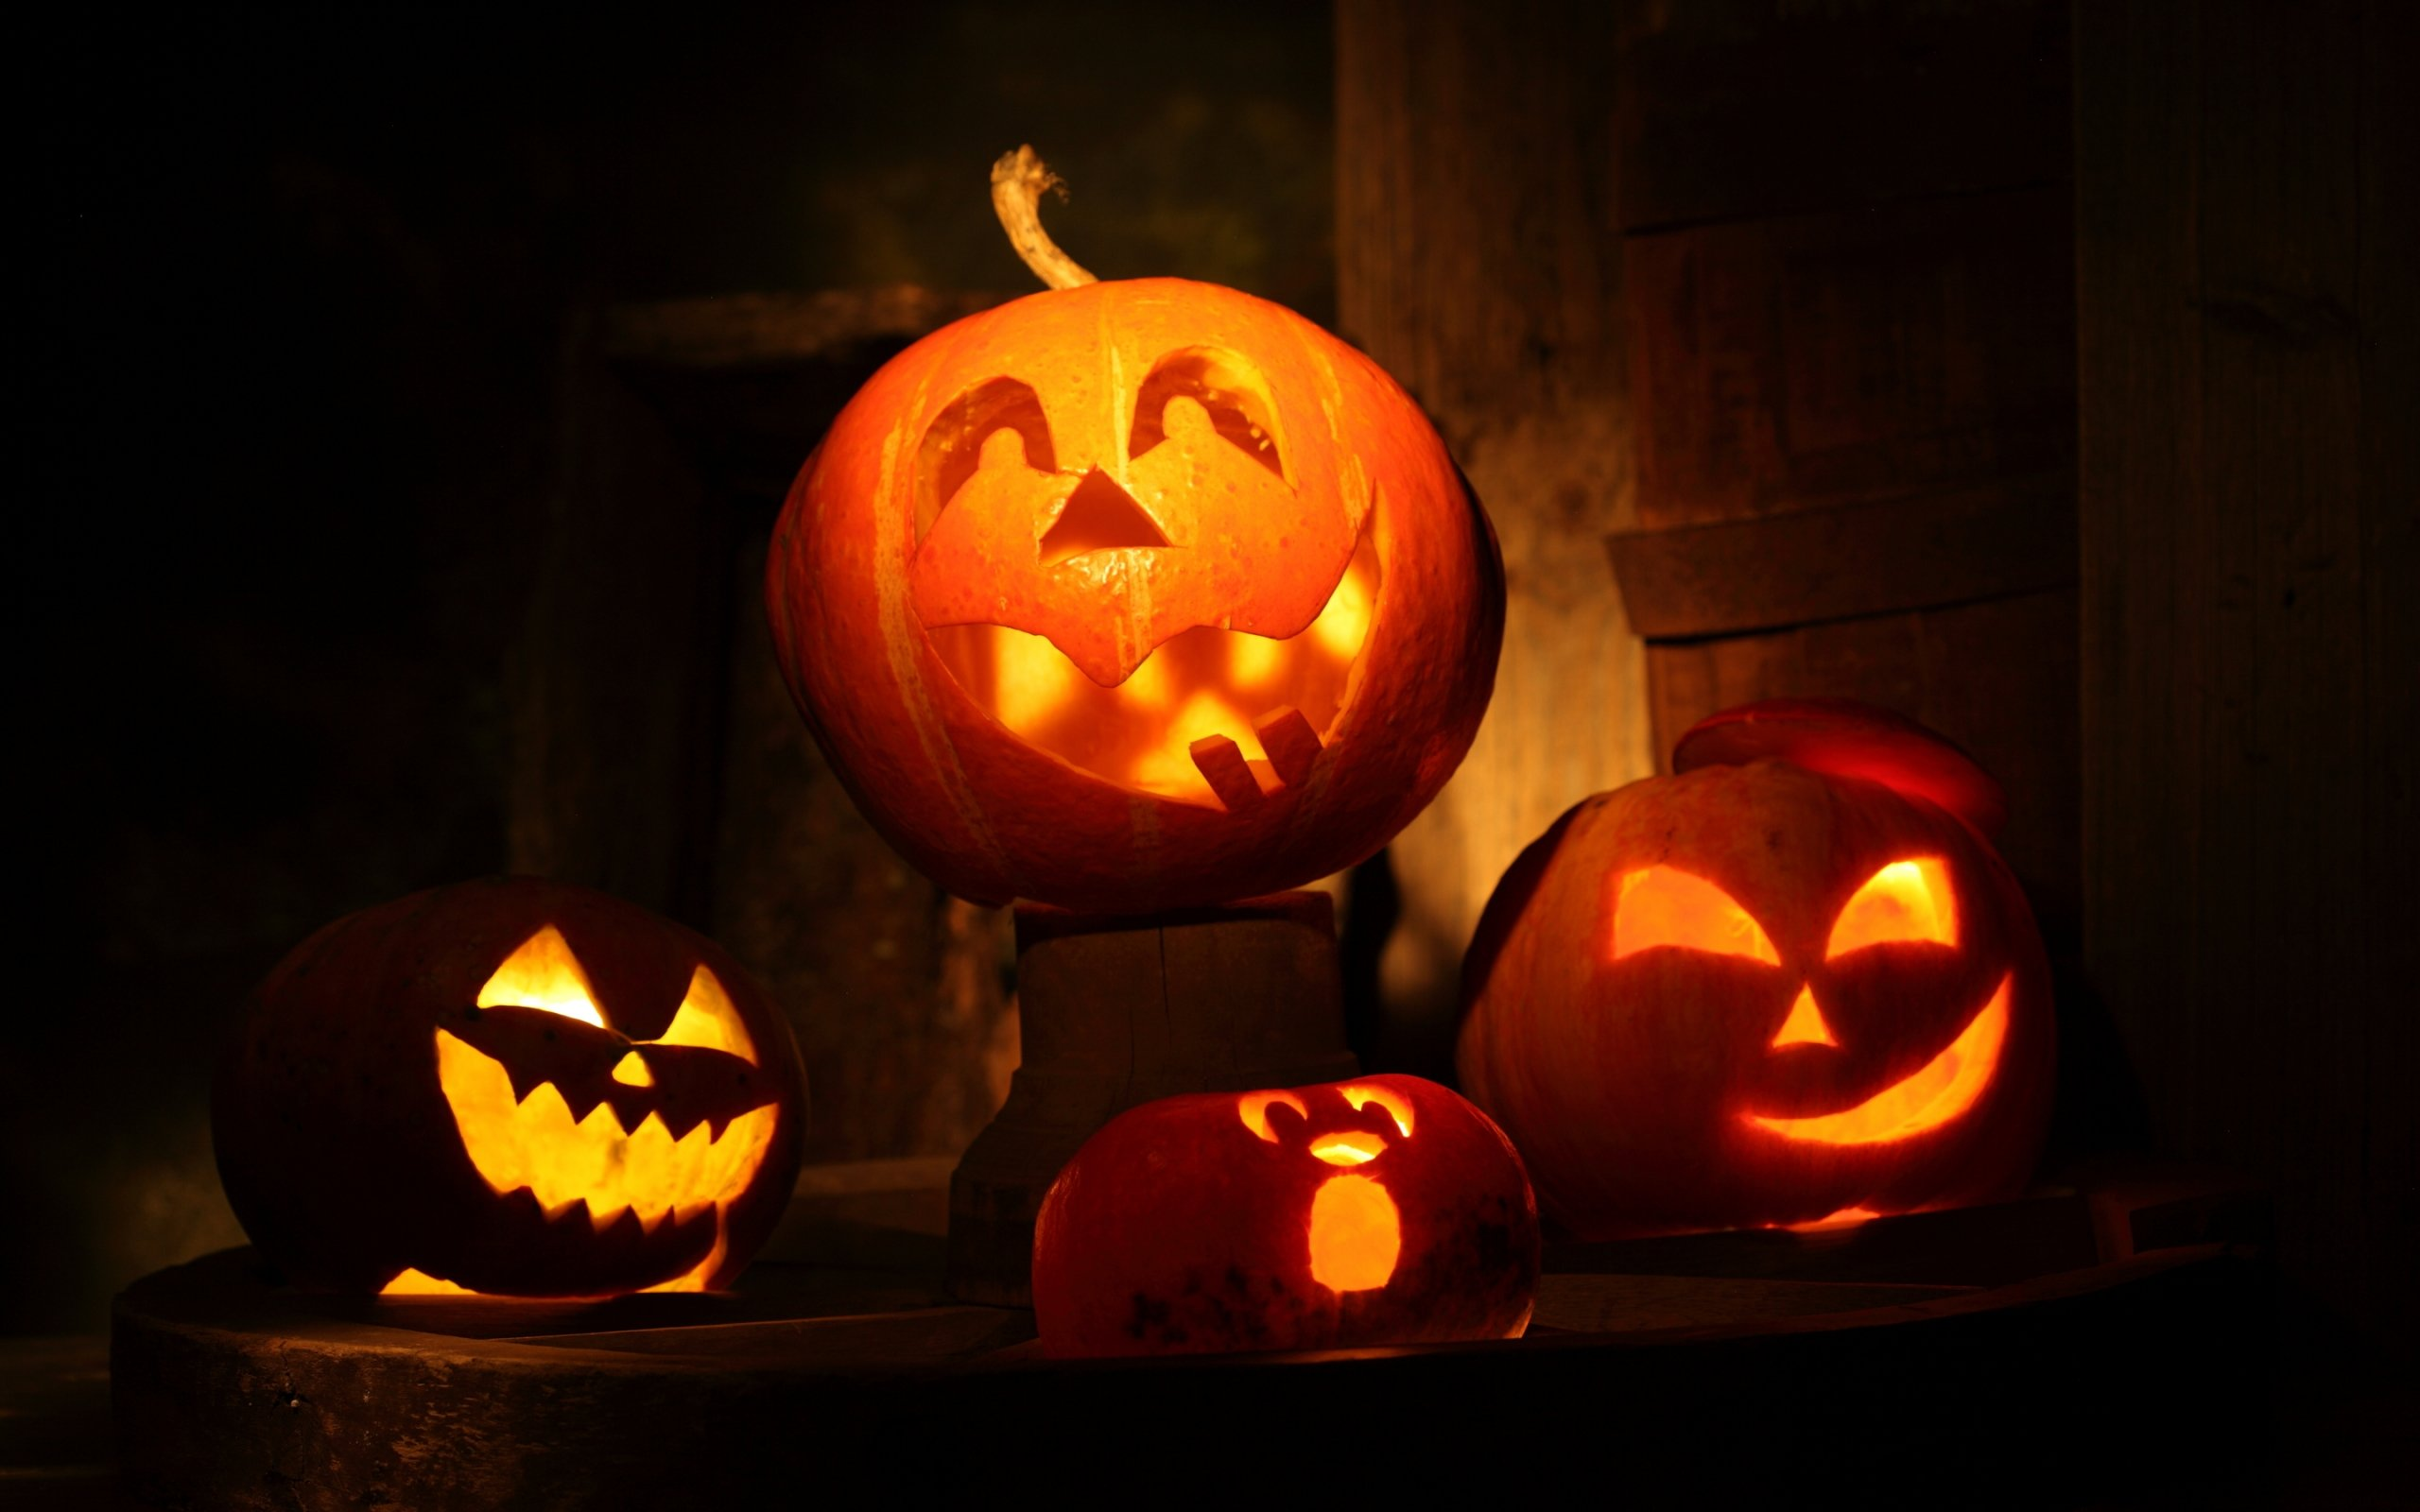 K pumpkin wallpapers high quality download free